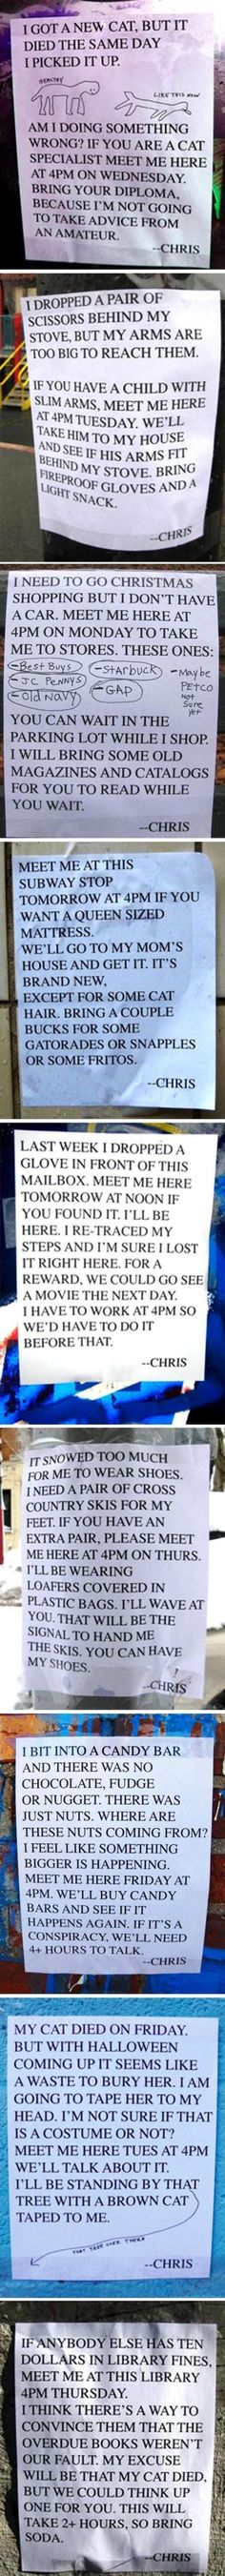 I don't know why I found this so hilarious but I cracked up. I think I should meet Chris at 4 PM so I can be his friend. I'll bring Fritos and Snapple.